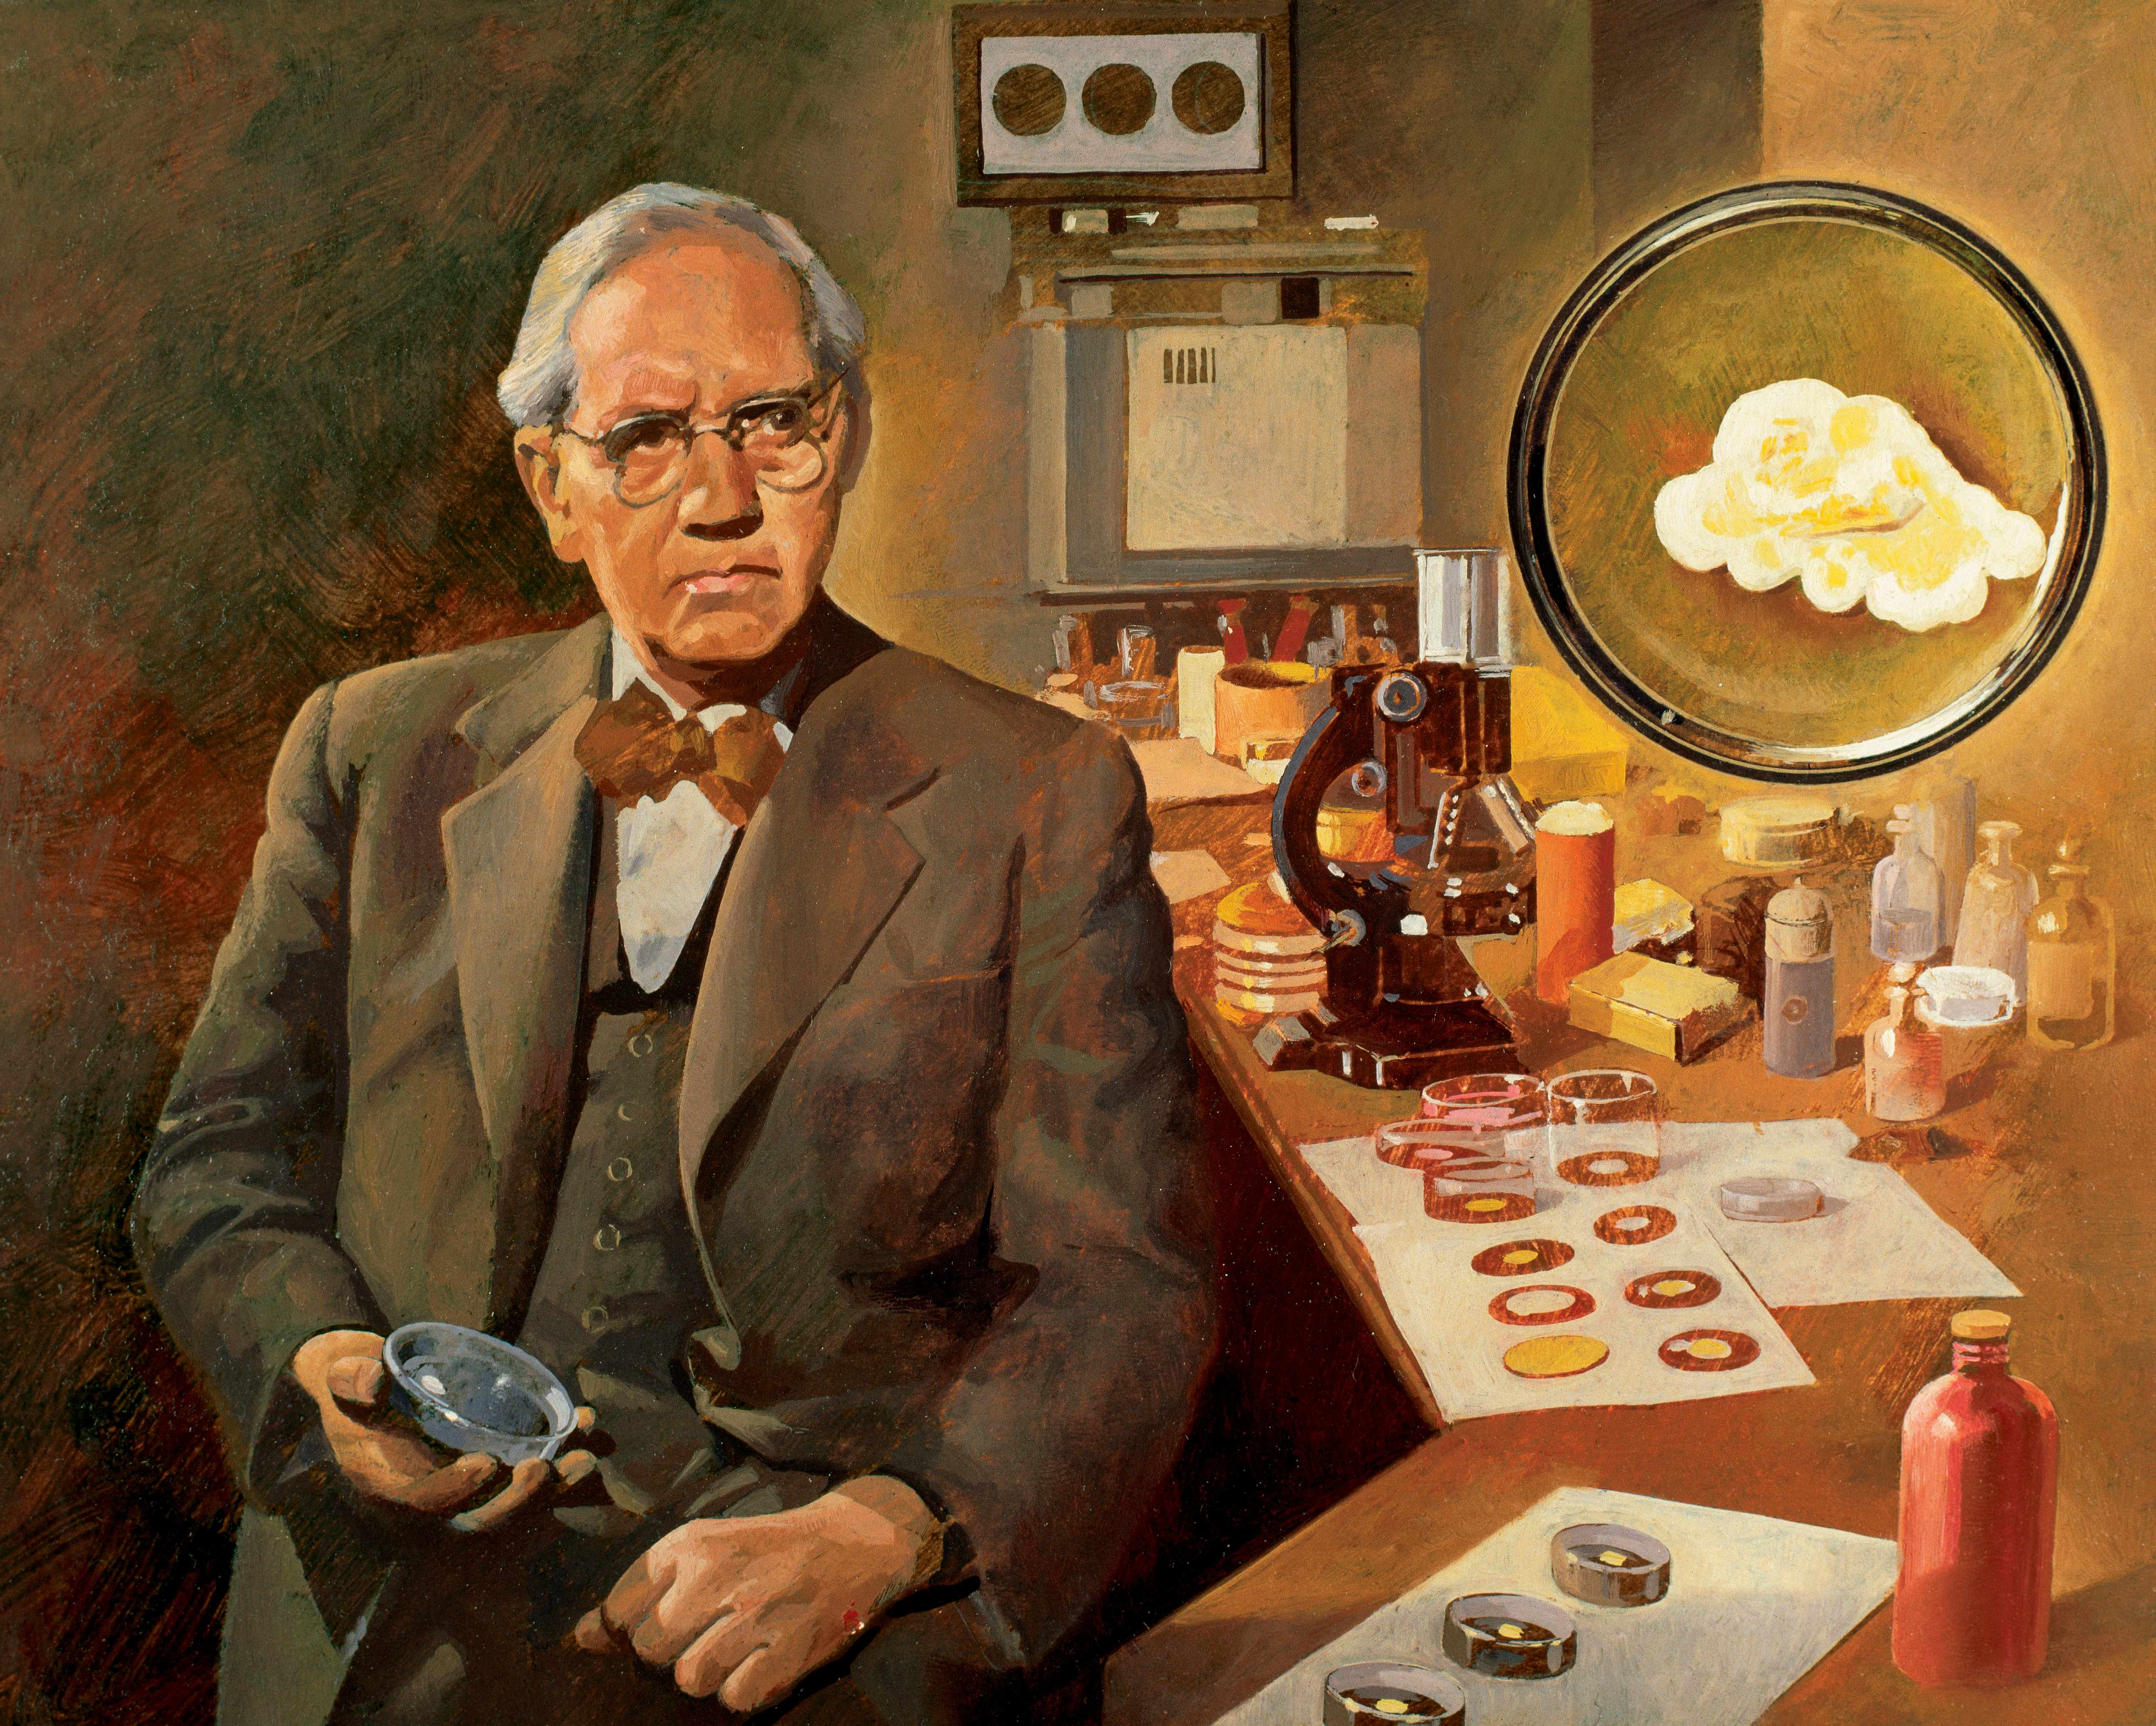 British microbiologist and discoverer of penicillin, Alexander Fleming. (Photo by Ipsumpix/Corbis via Getty Images)